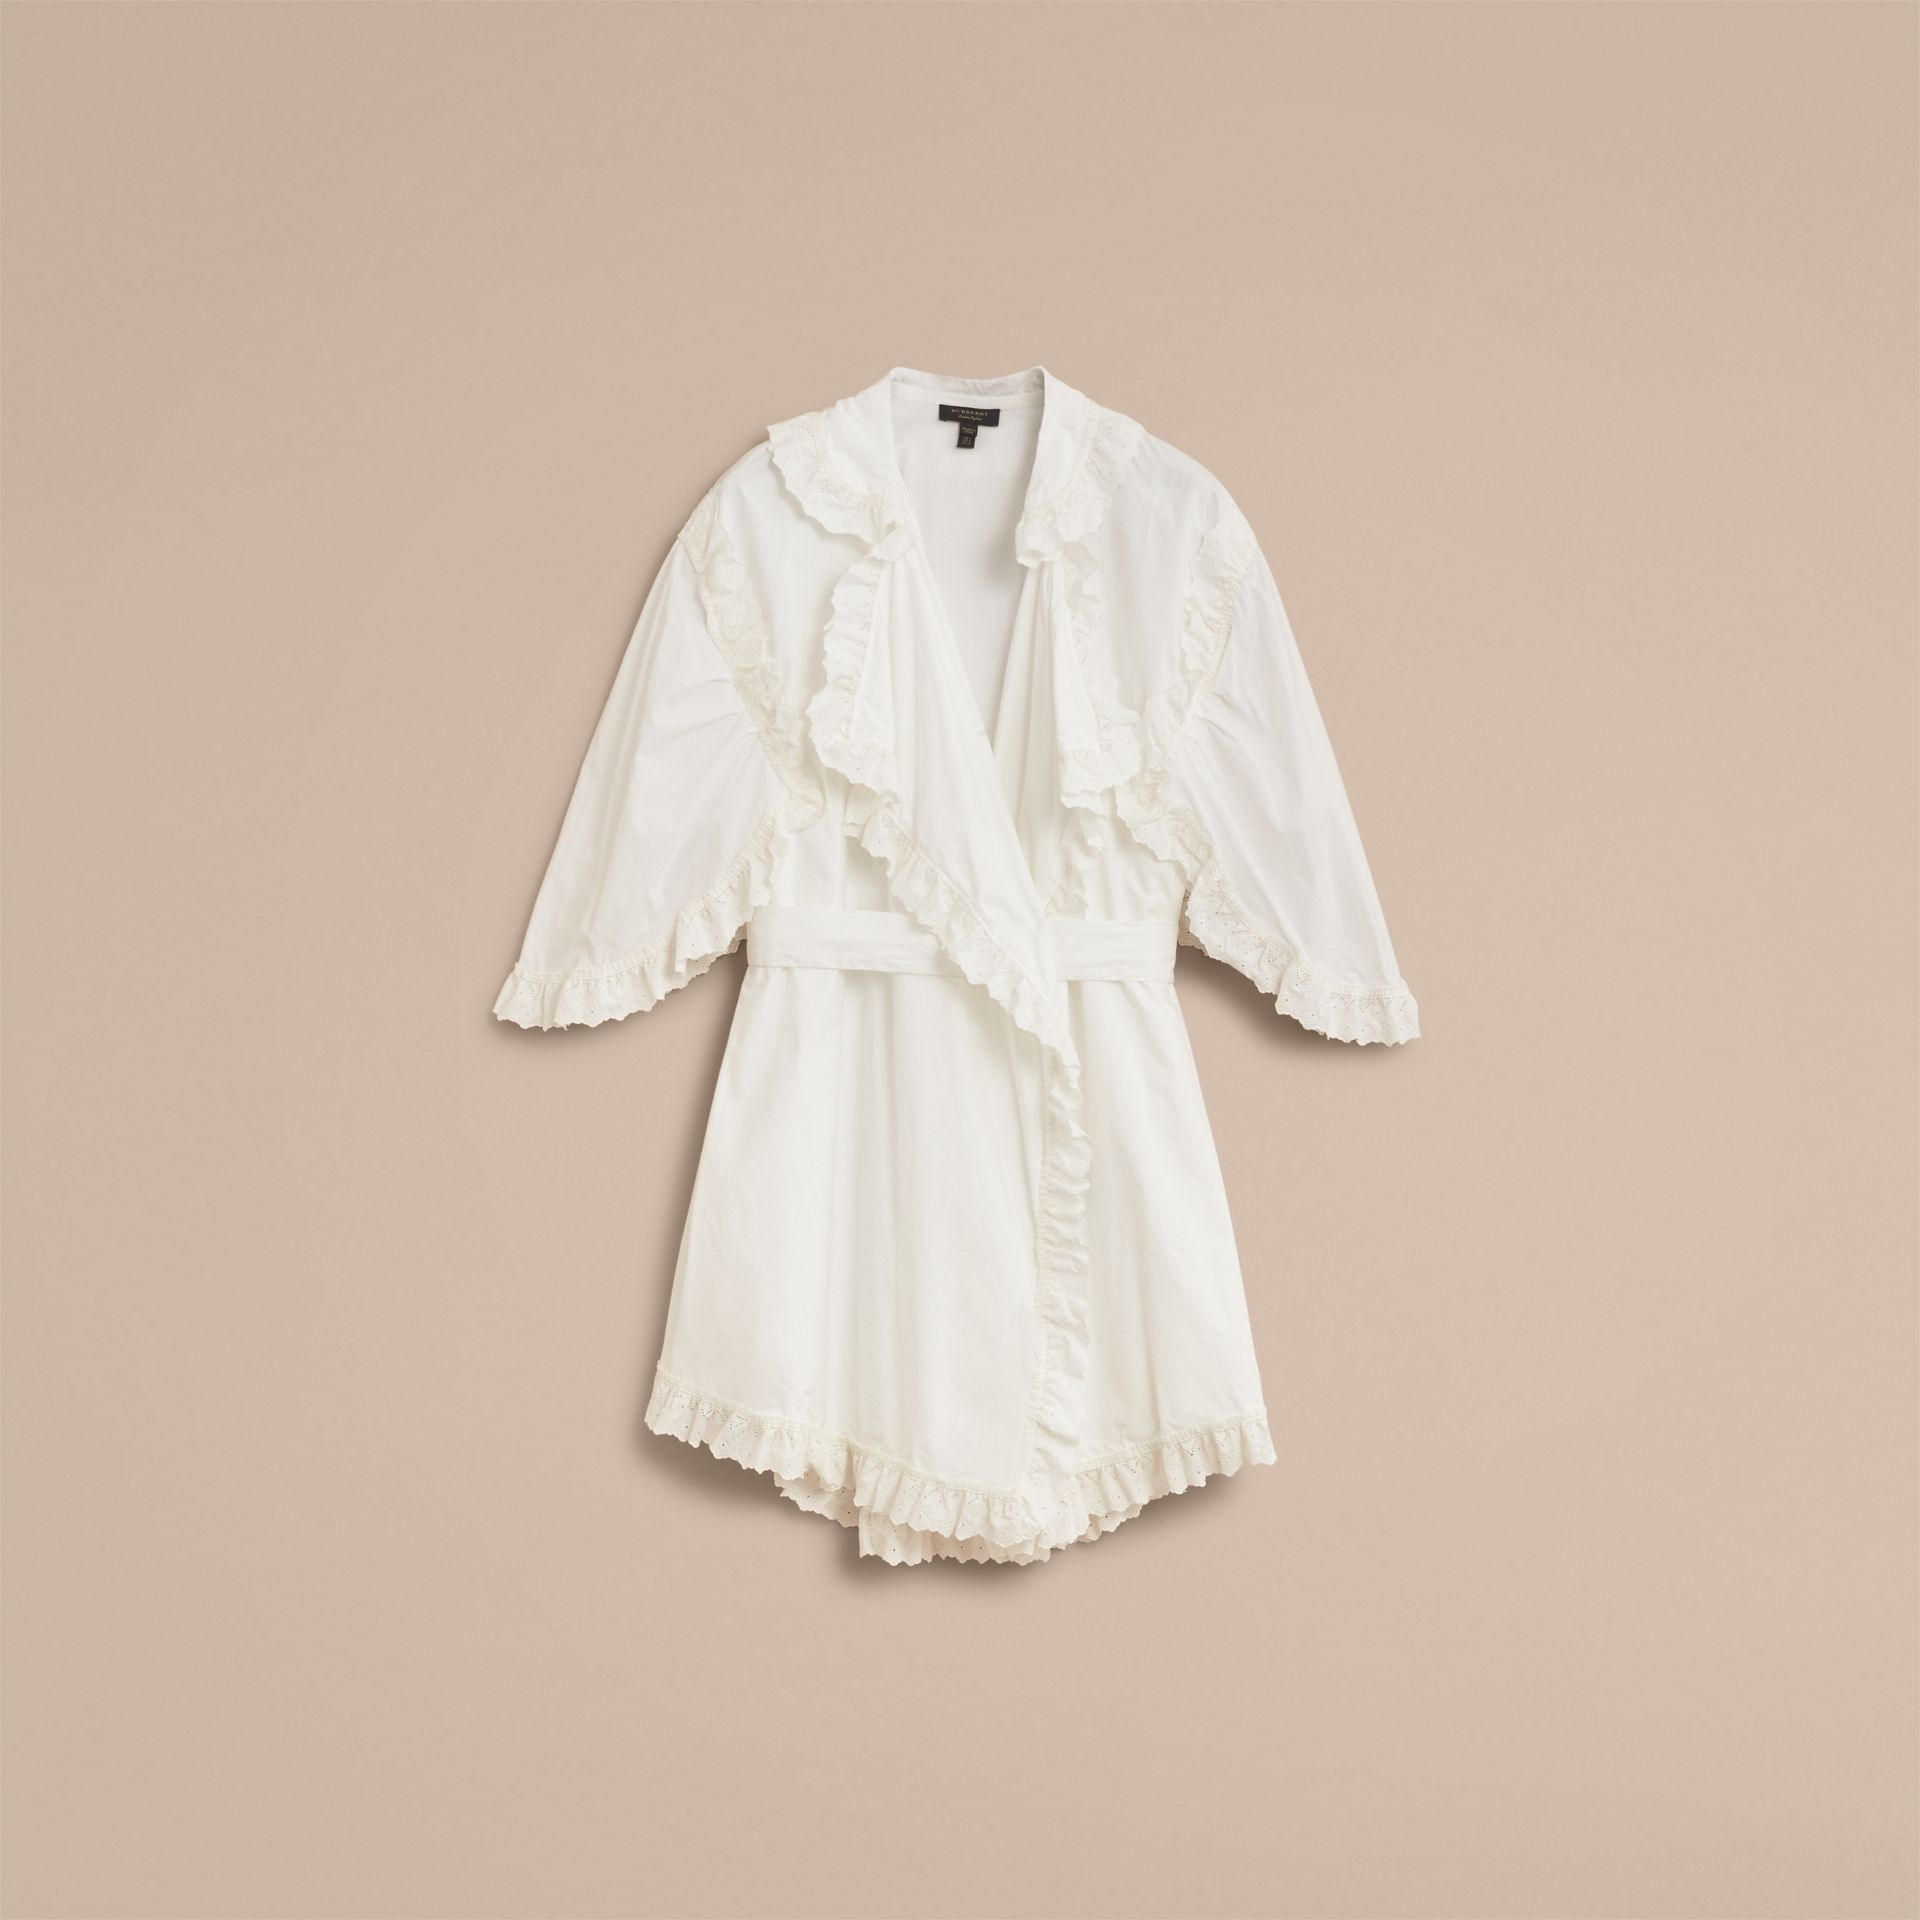 Broderie Anglaise Ruffle Cotton Dress - Women | Burberry - gallery image 4